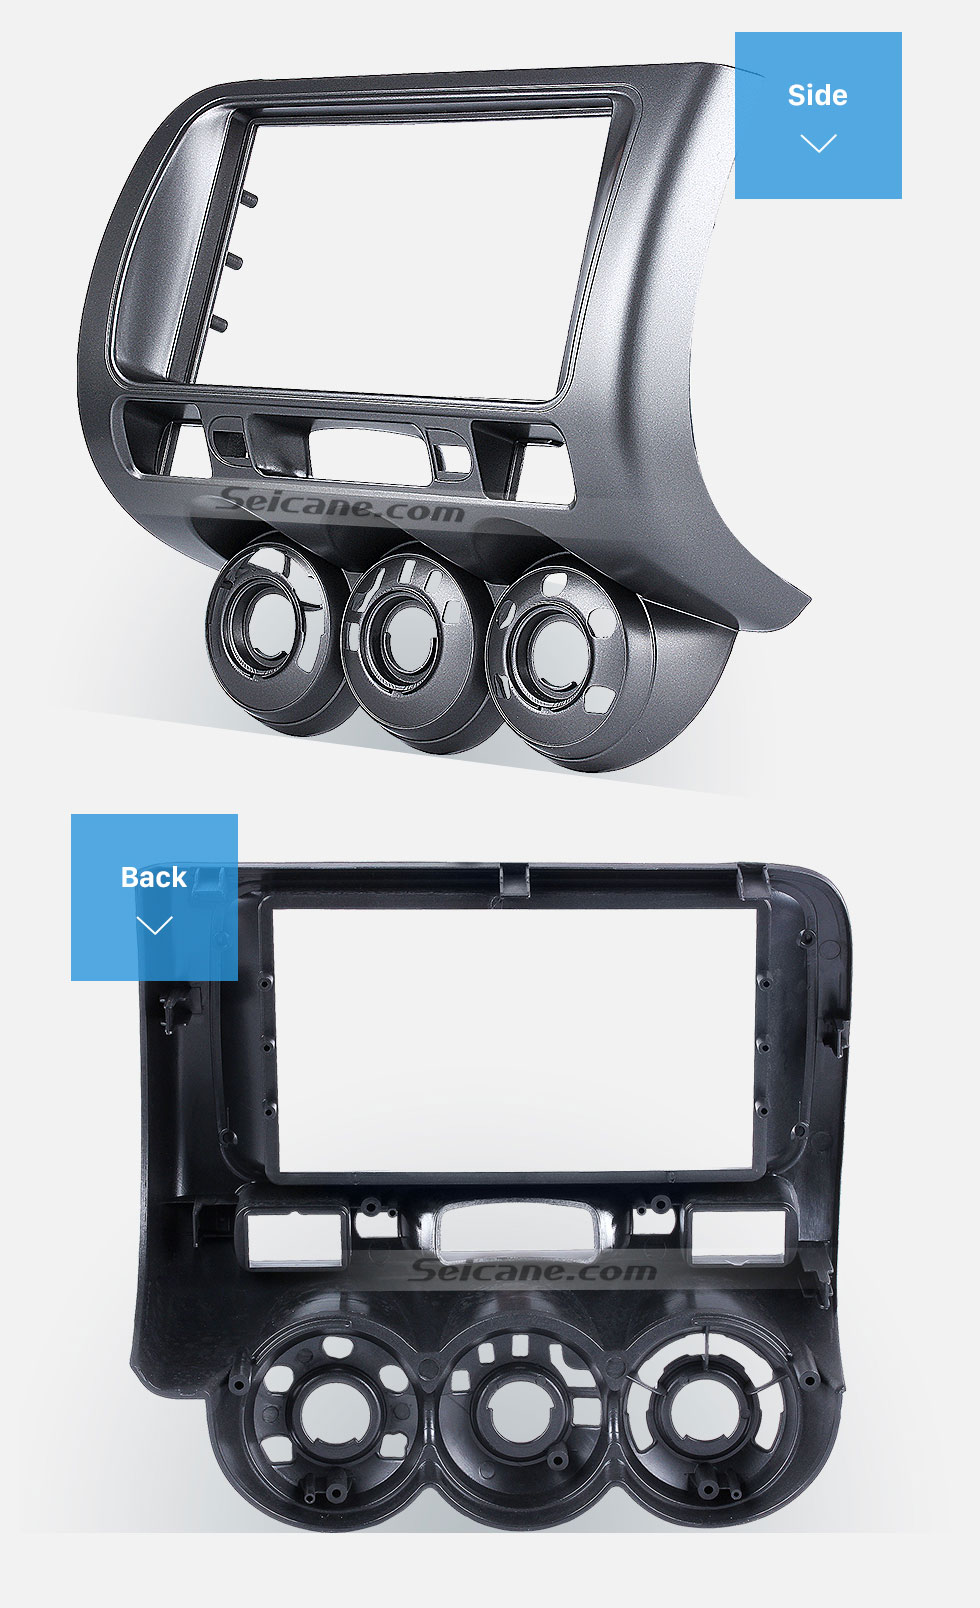 This fascia is specially designed for the modified installation of a double  din car radio for 2002-2008 Honda Jazz (Manual AC, LHD).